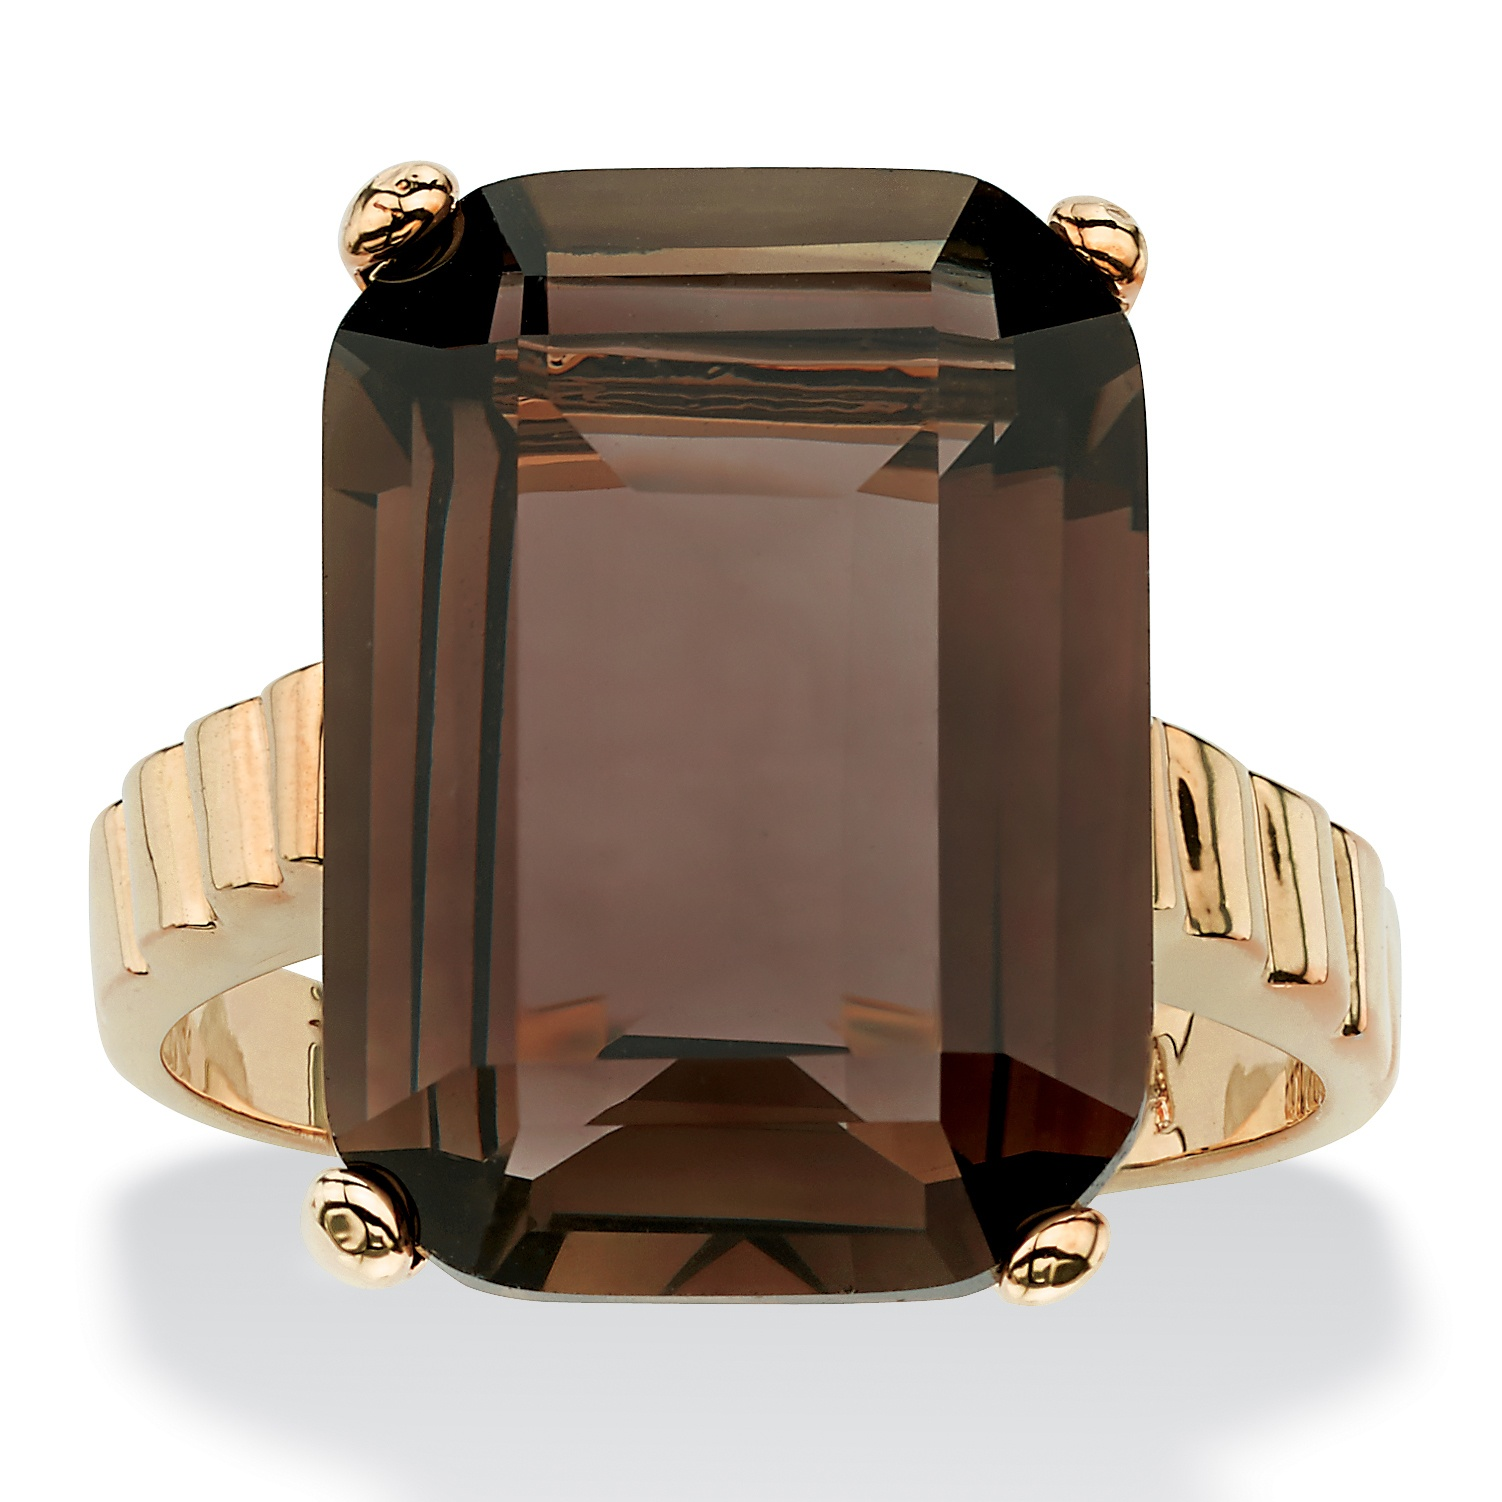 Angelina D'Andrea 10.75 TCW Emerald-Cut Genuine Smoky Quartz 14k Gold-Plated Ring at Sears.com